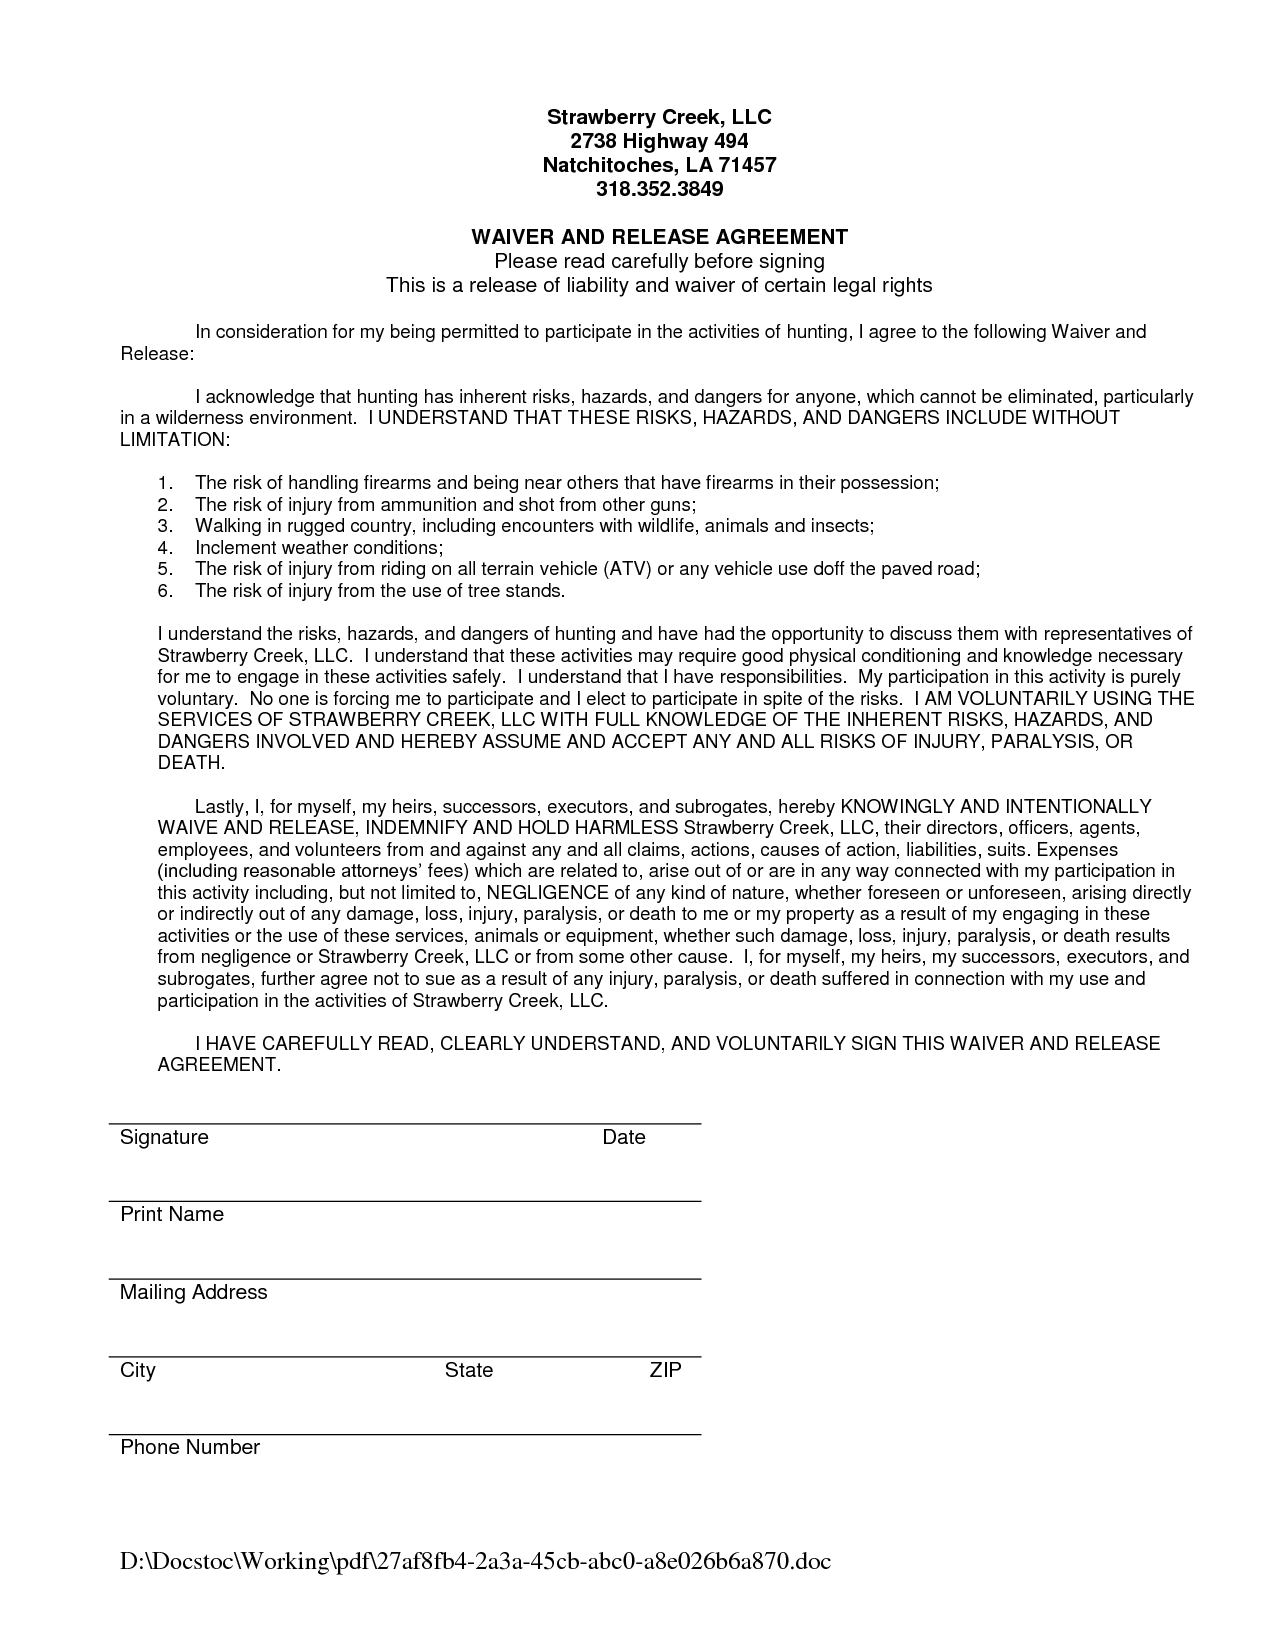 Waiver And Release Of Liability Form Sample Swifterco waiver – Example of Liability Waiver